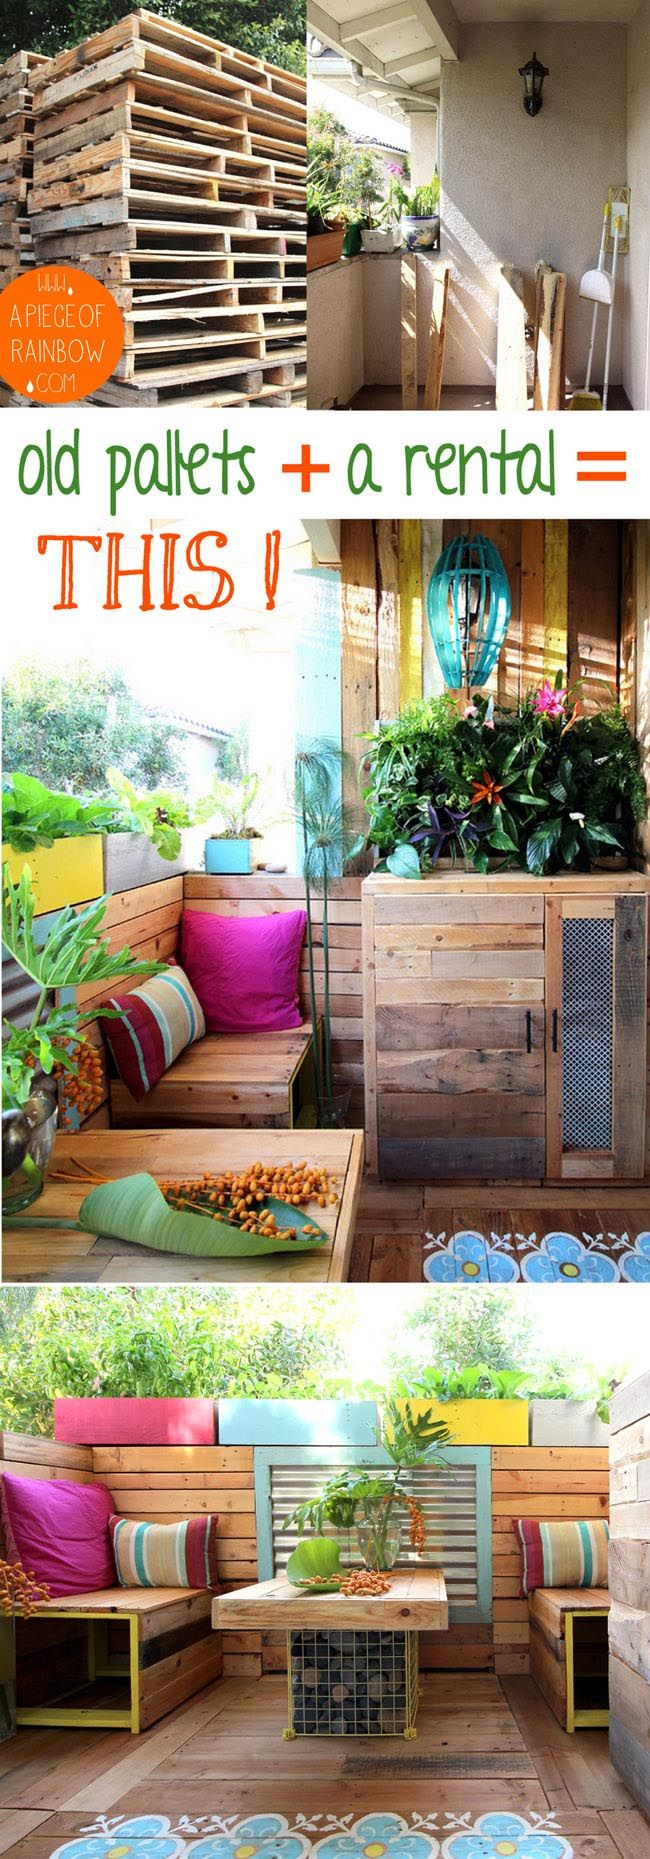 Renters' Remodel: Pallet Outdoor Room- A Piece of Rainbow